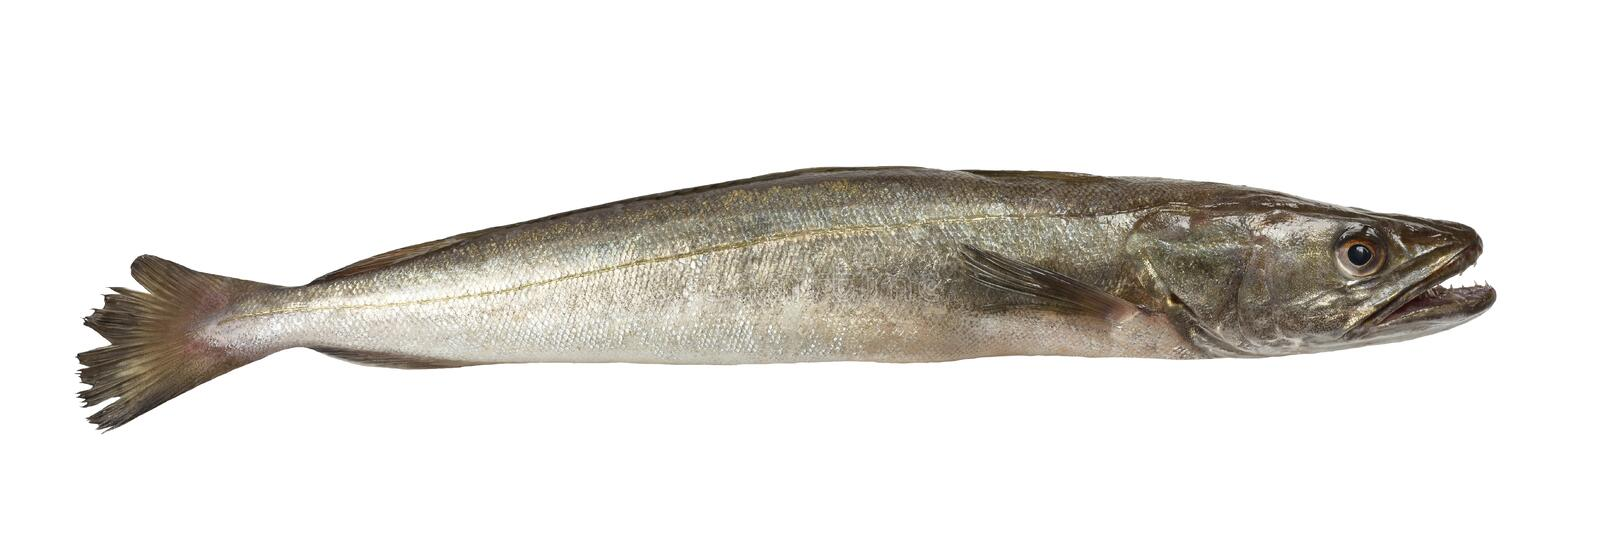 Hake fish isolated stock photography